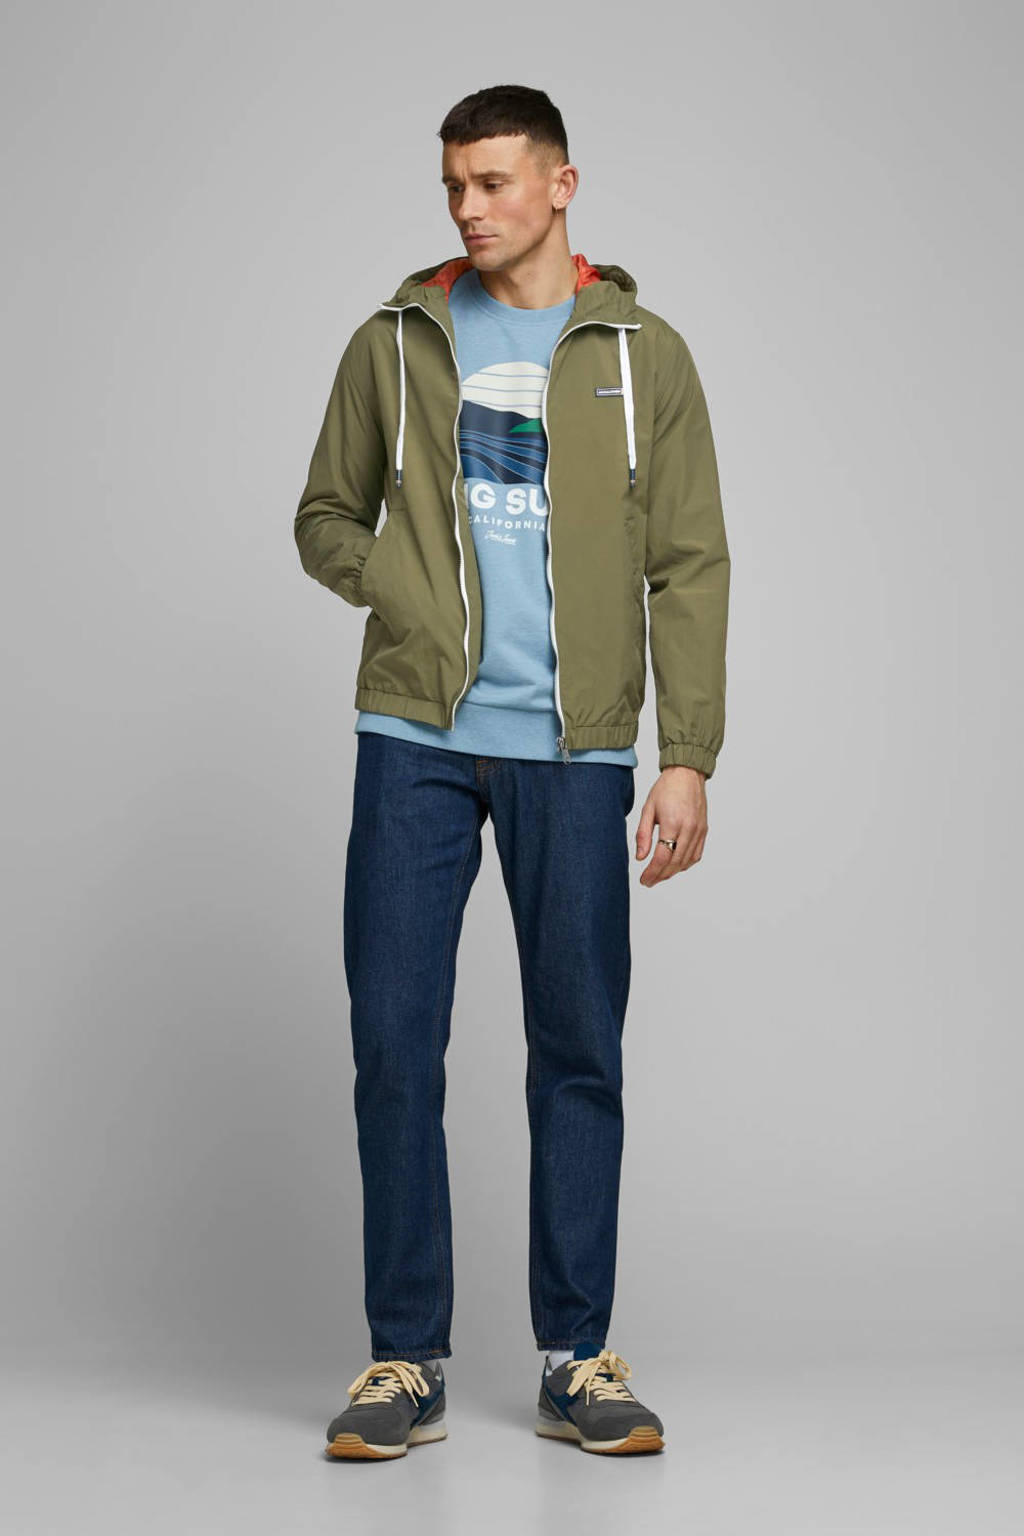 JACK & JONES ORIGINALS zomerjas groen, Groen